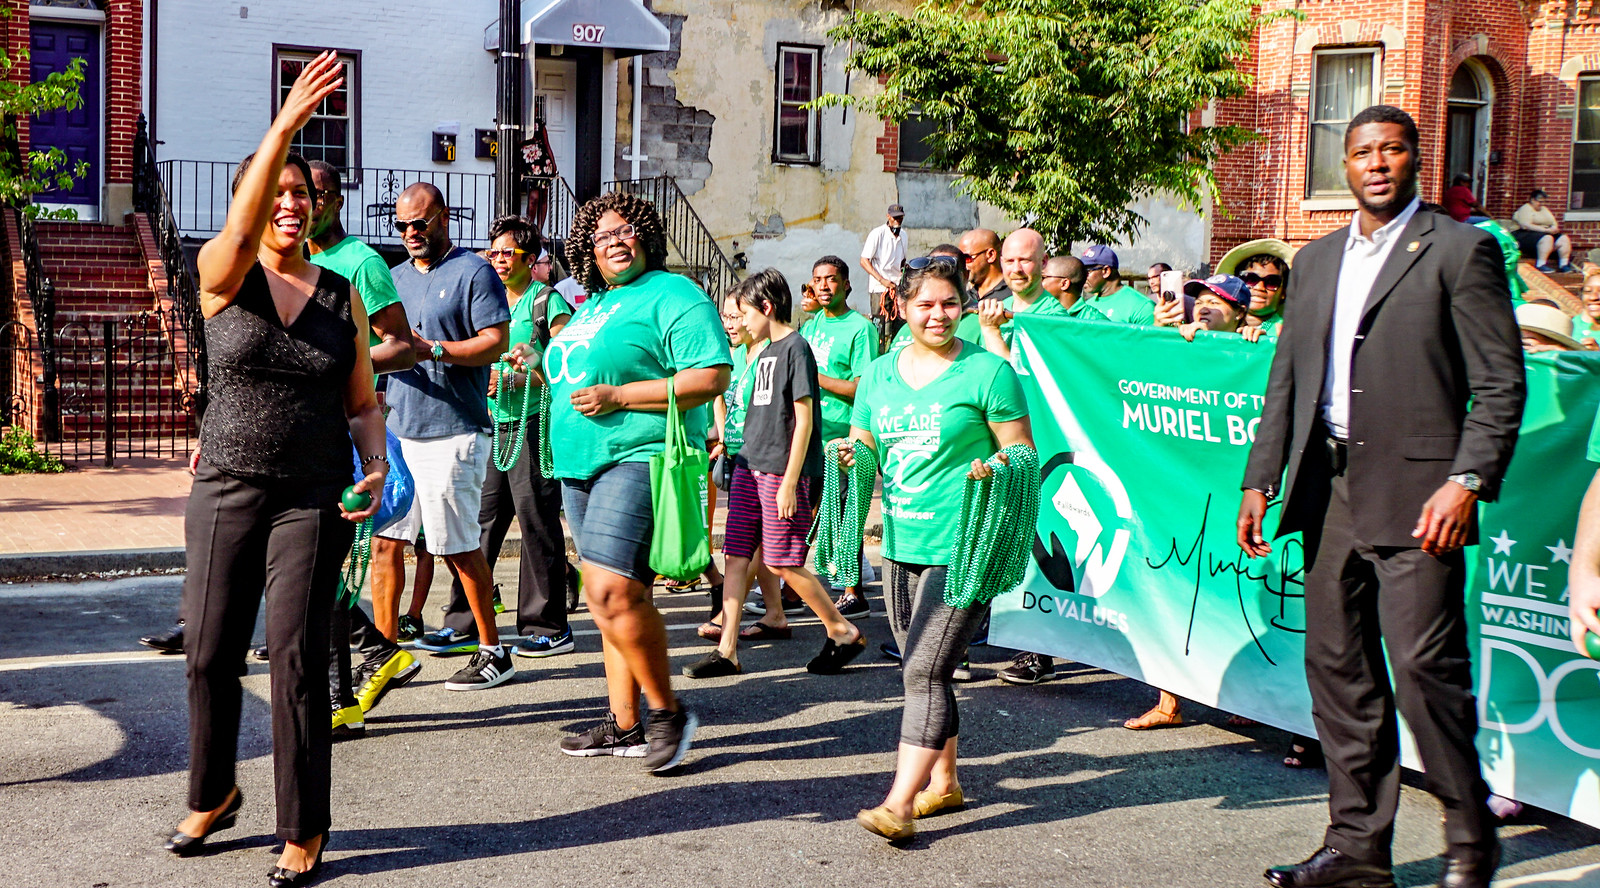 2018.05.12 DC Funk Parade, Washington, DC USA 02199